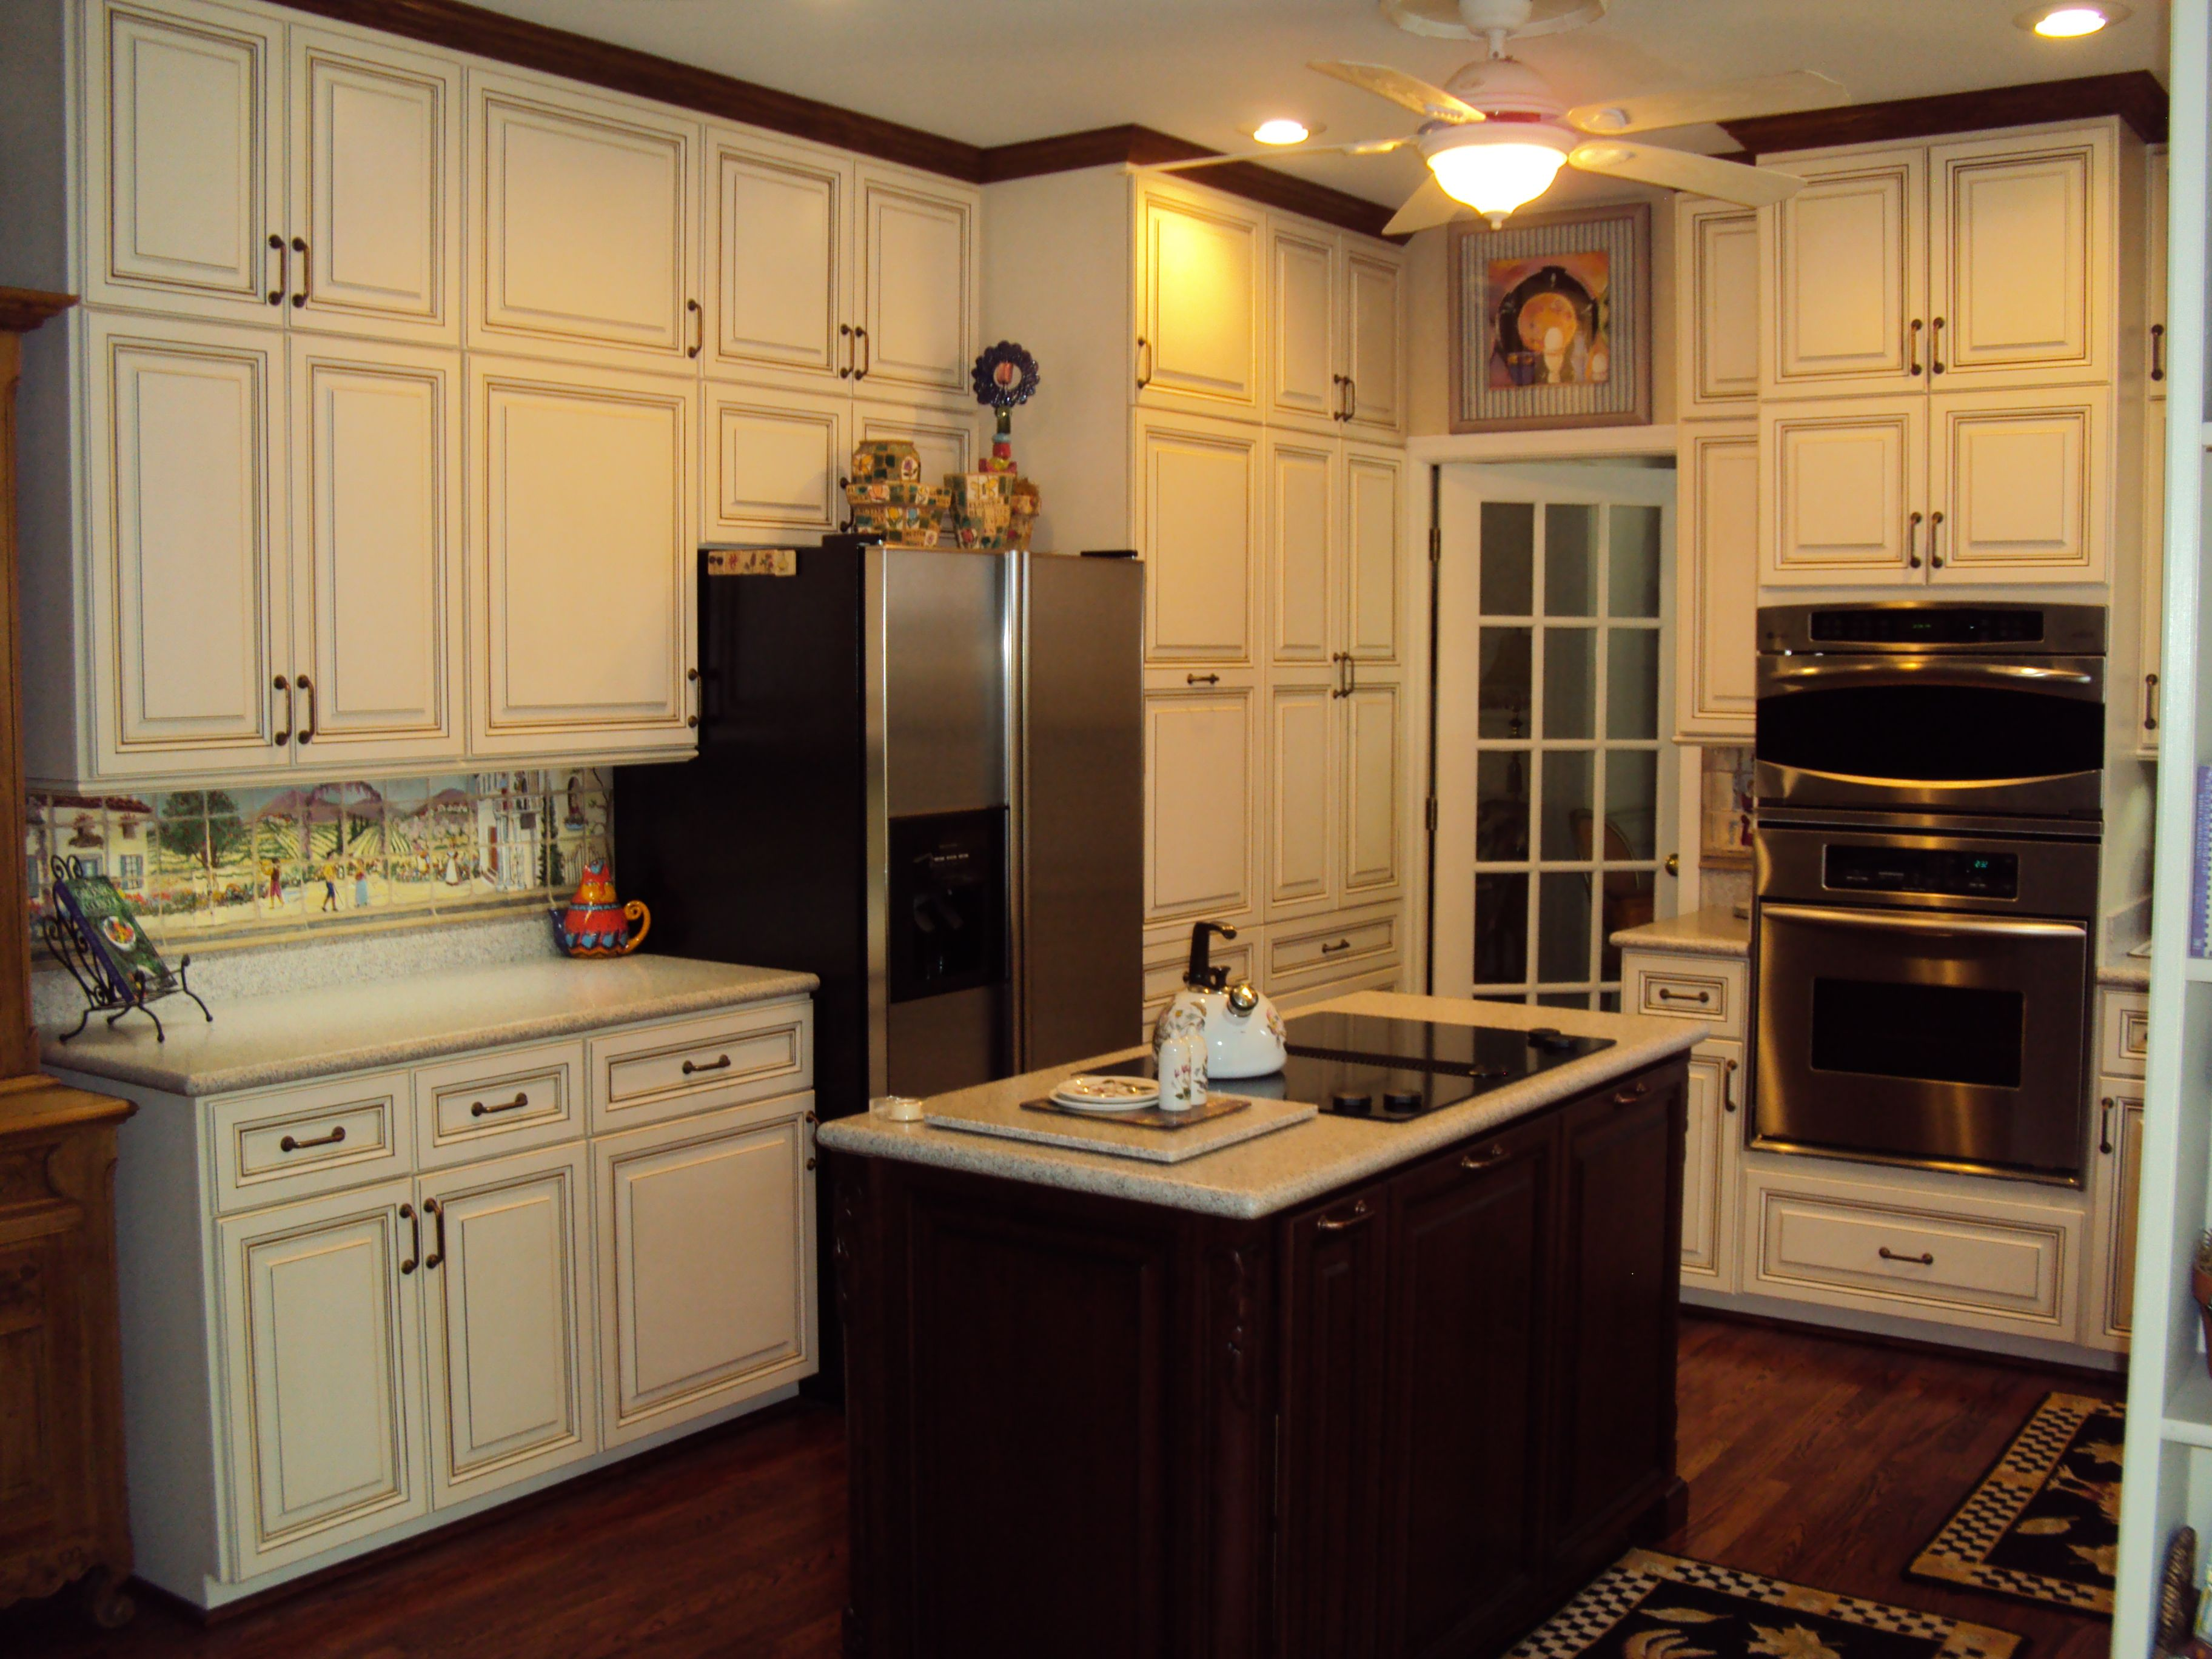 cabinet renewal custom kitchen cabinets refacing kitchen cabinets custom kitchen on kitchen cabinets refacing id=49935